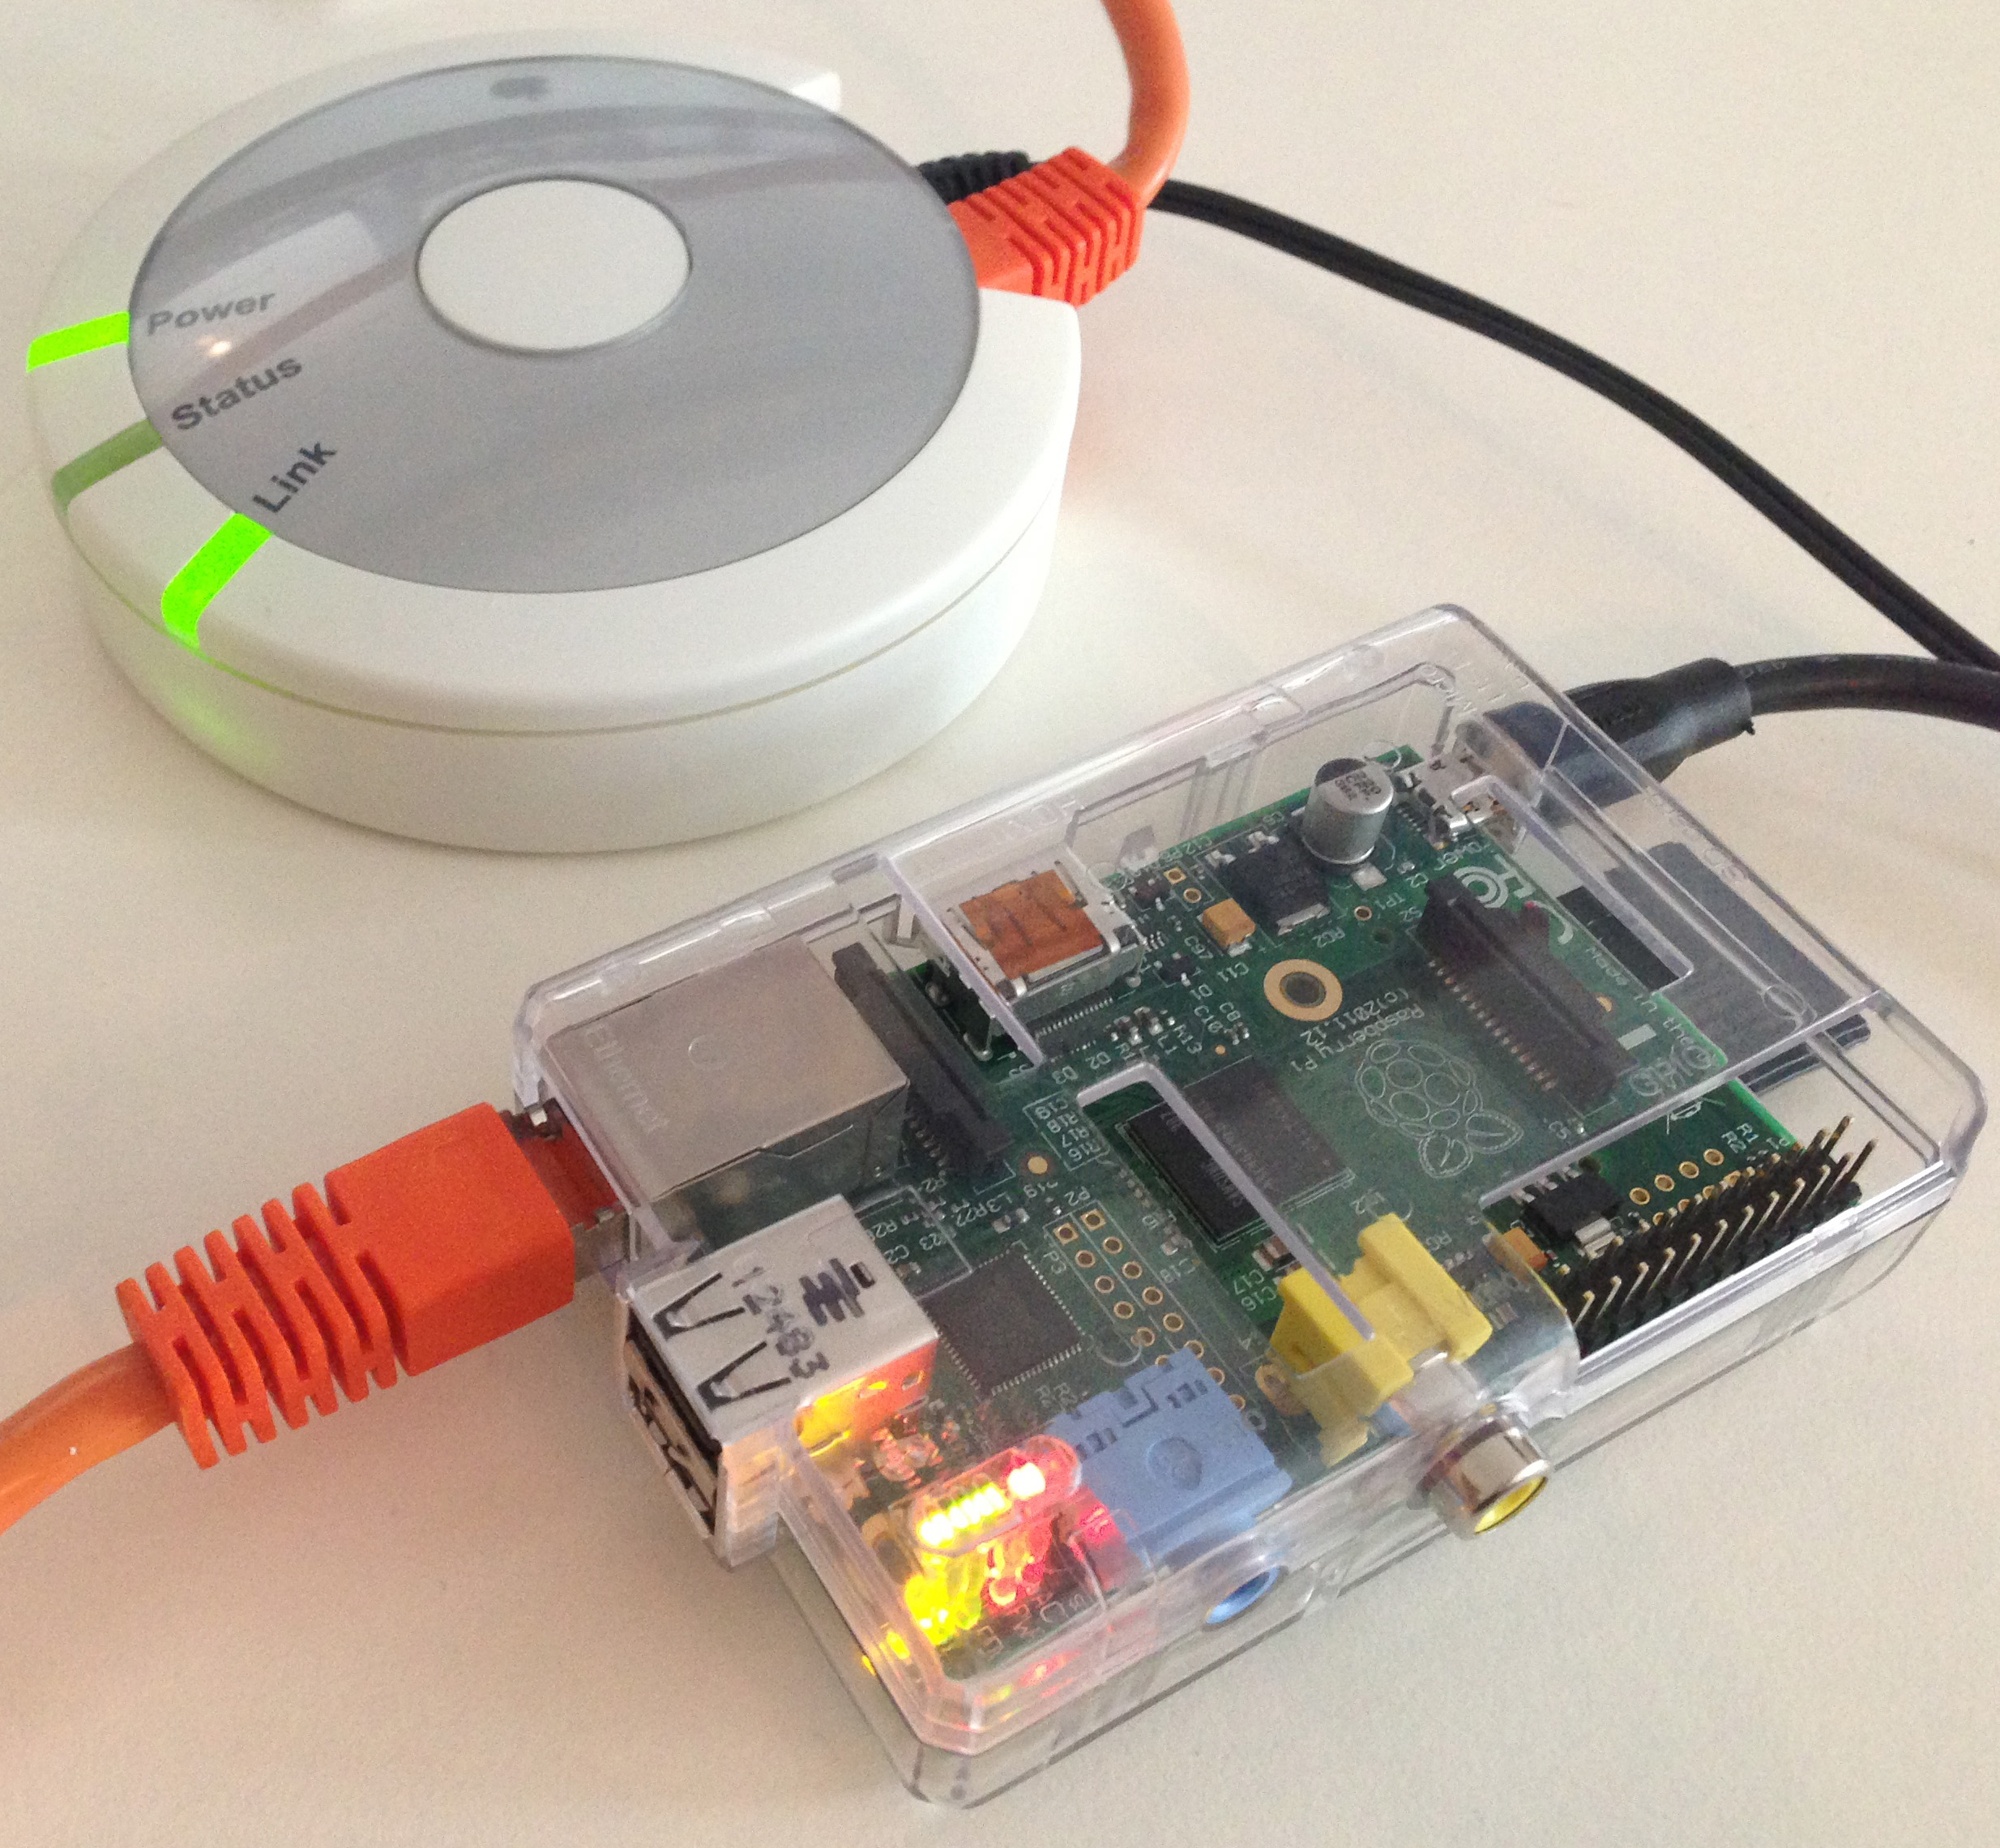 raspberry pi als fhem server und hmlan adapter